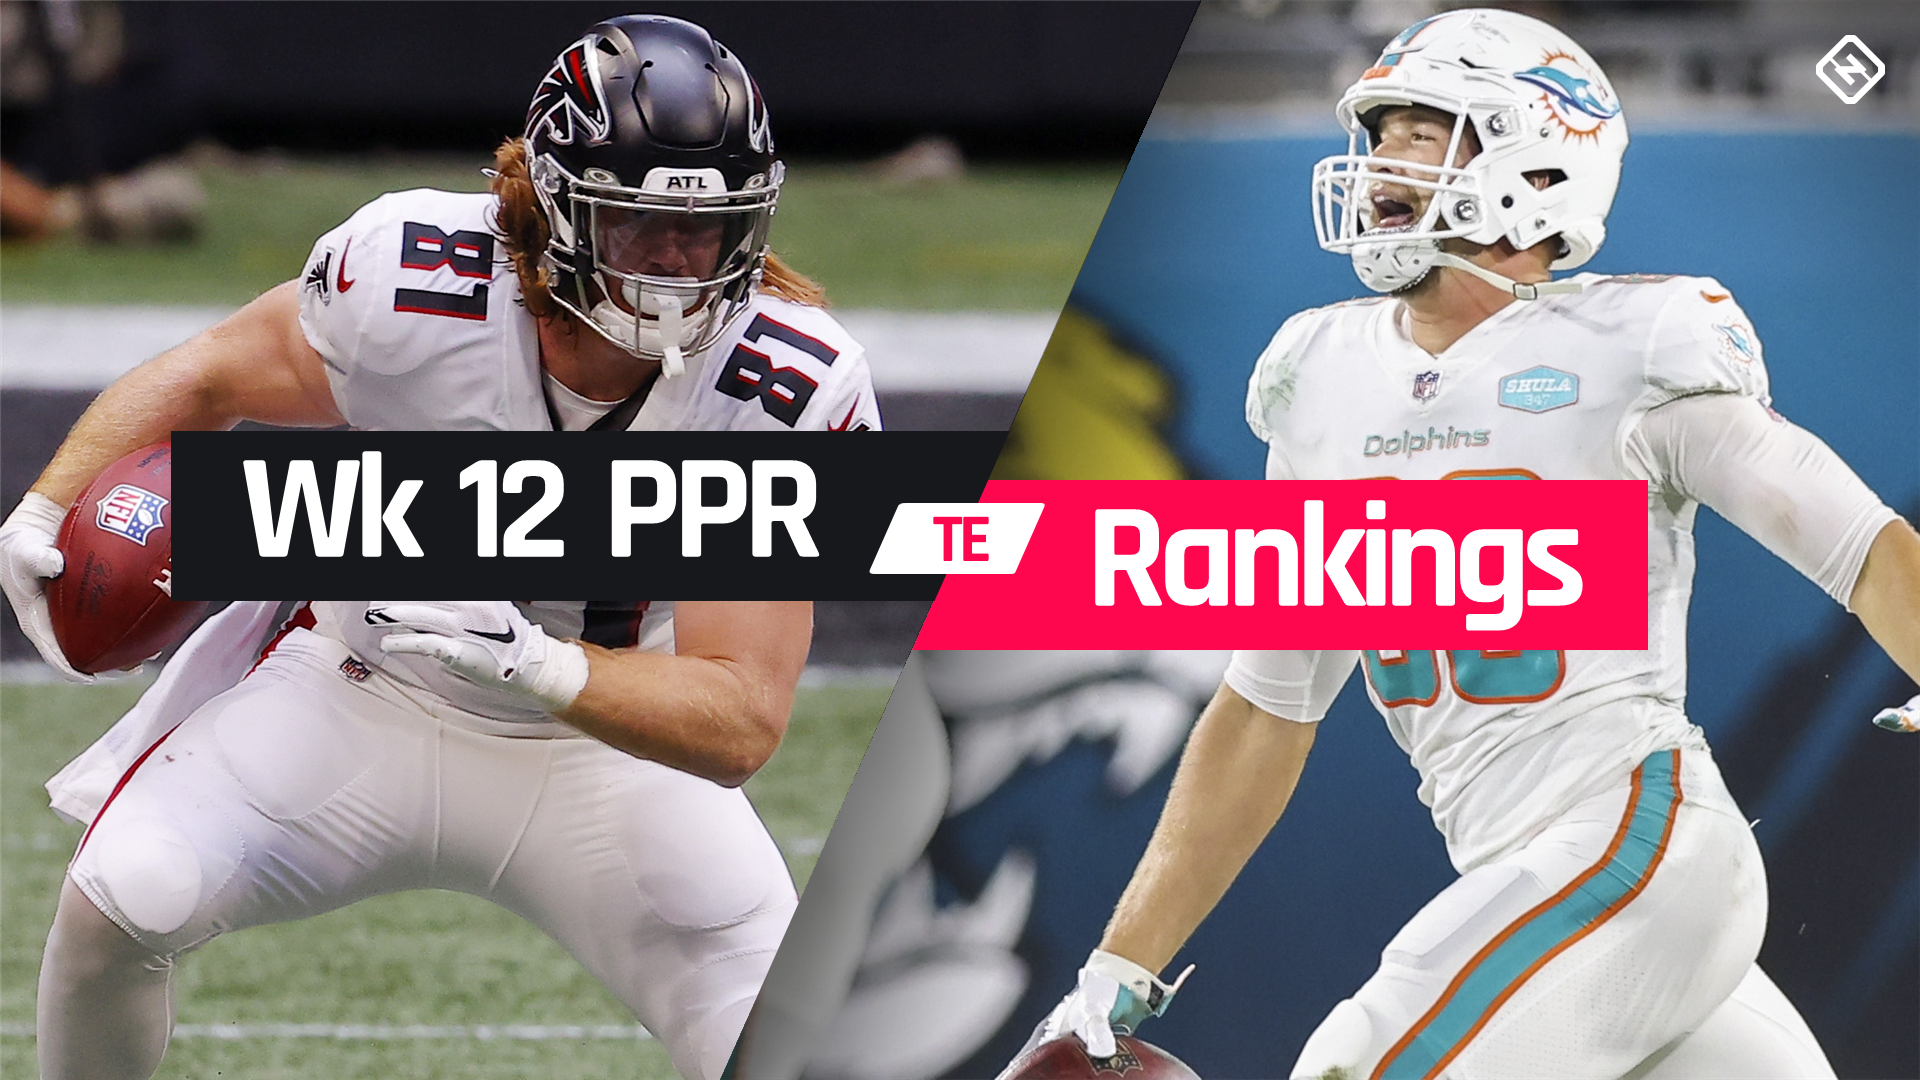 Week 12 Fantasy Te Ppr Rankings Must Starts Sleepers Potential Busts At Tight End Worldnewsera Is it sate to visit paris this summer after osama bin laden pasted away ? boris chen. week 12 fantasy te ppr rankings must